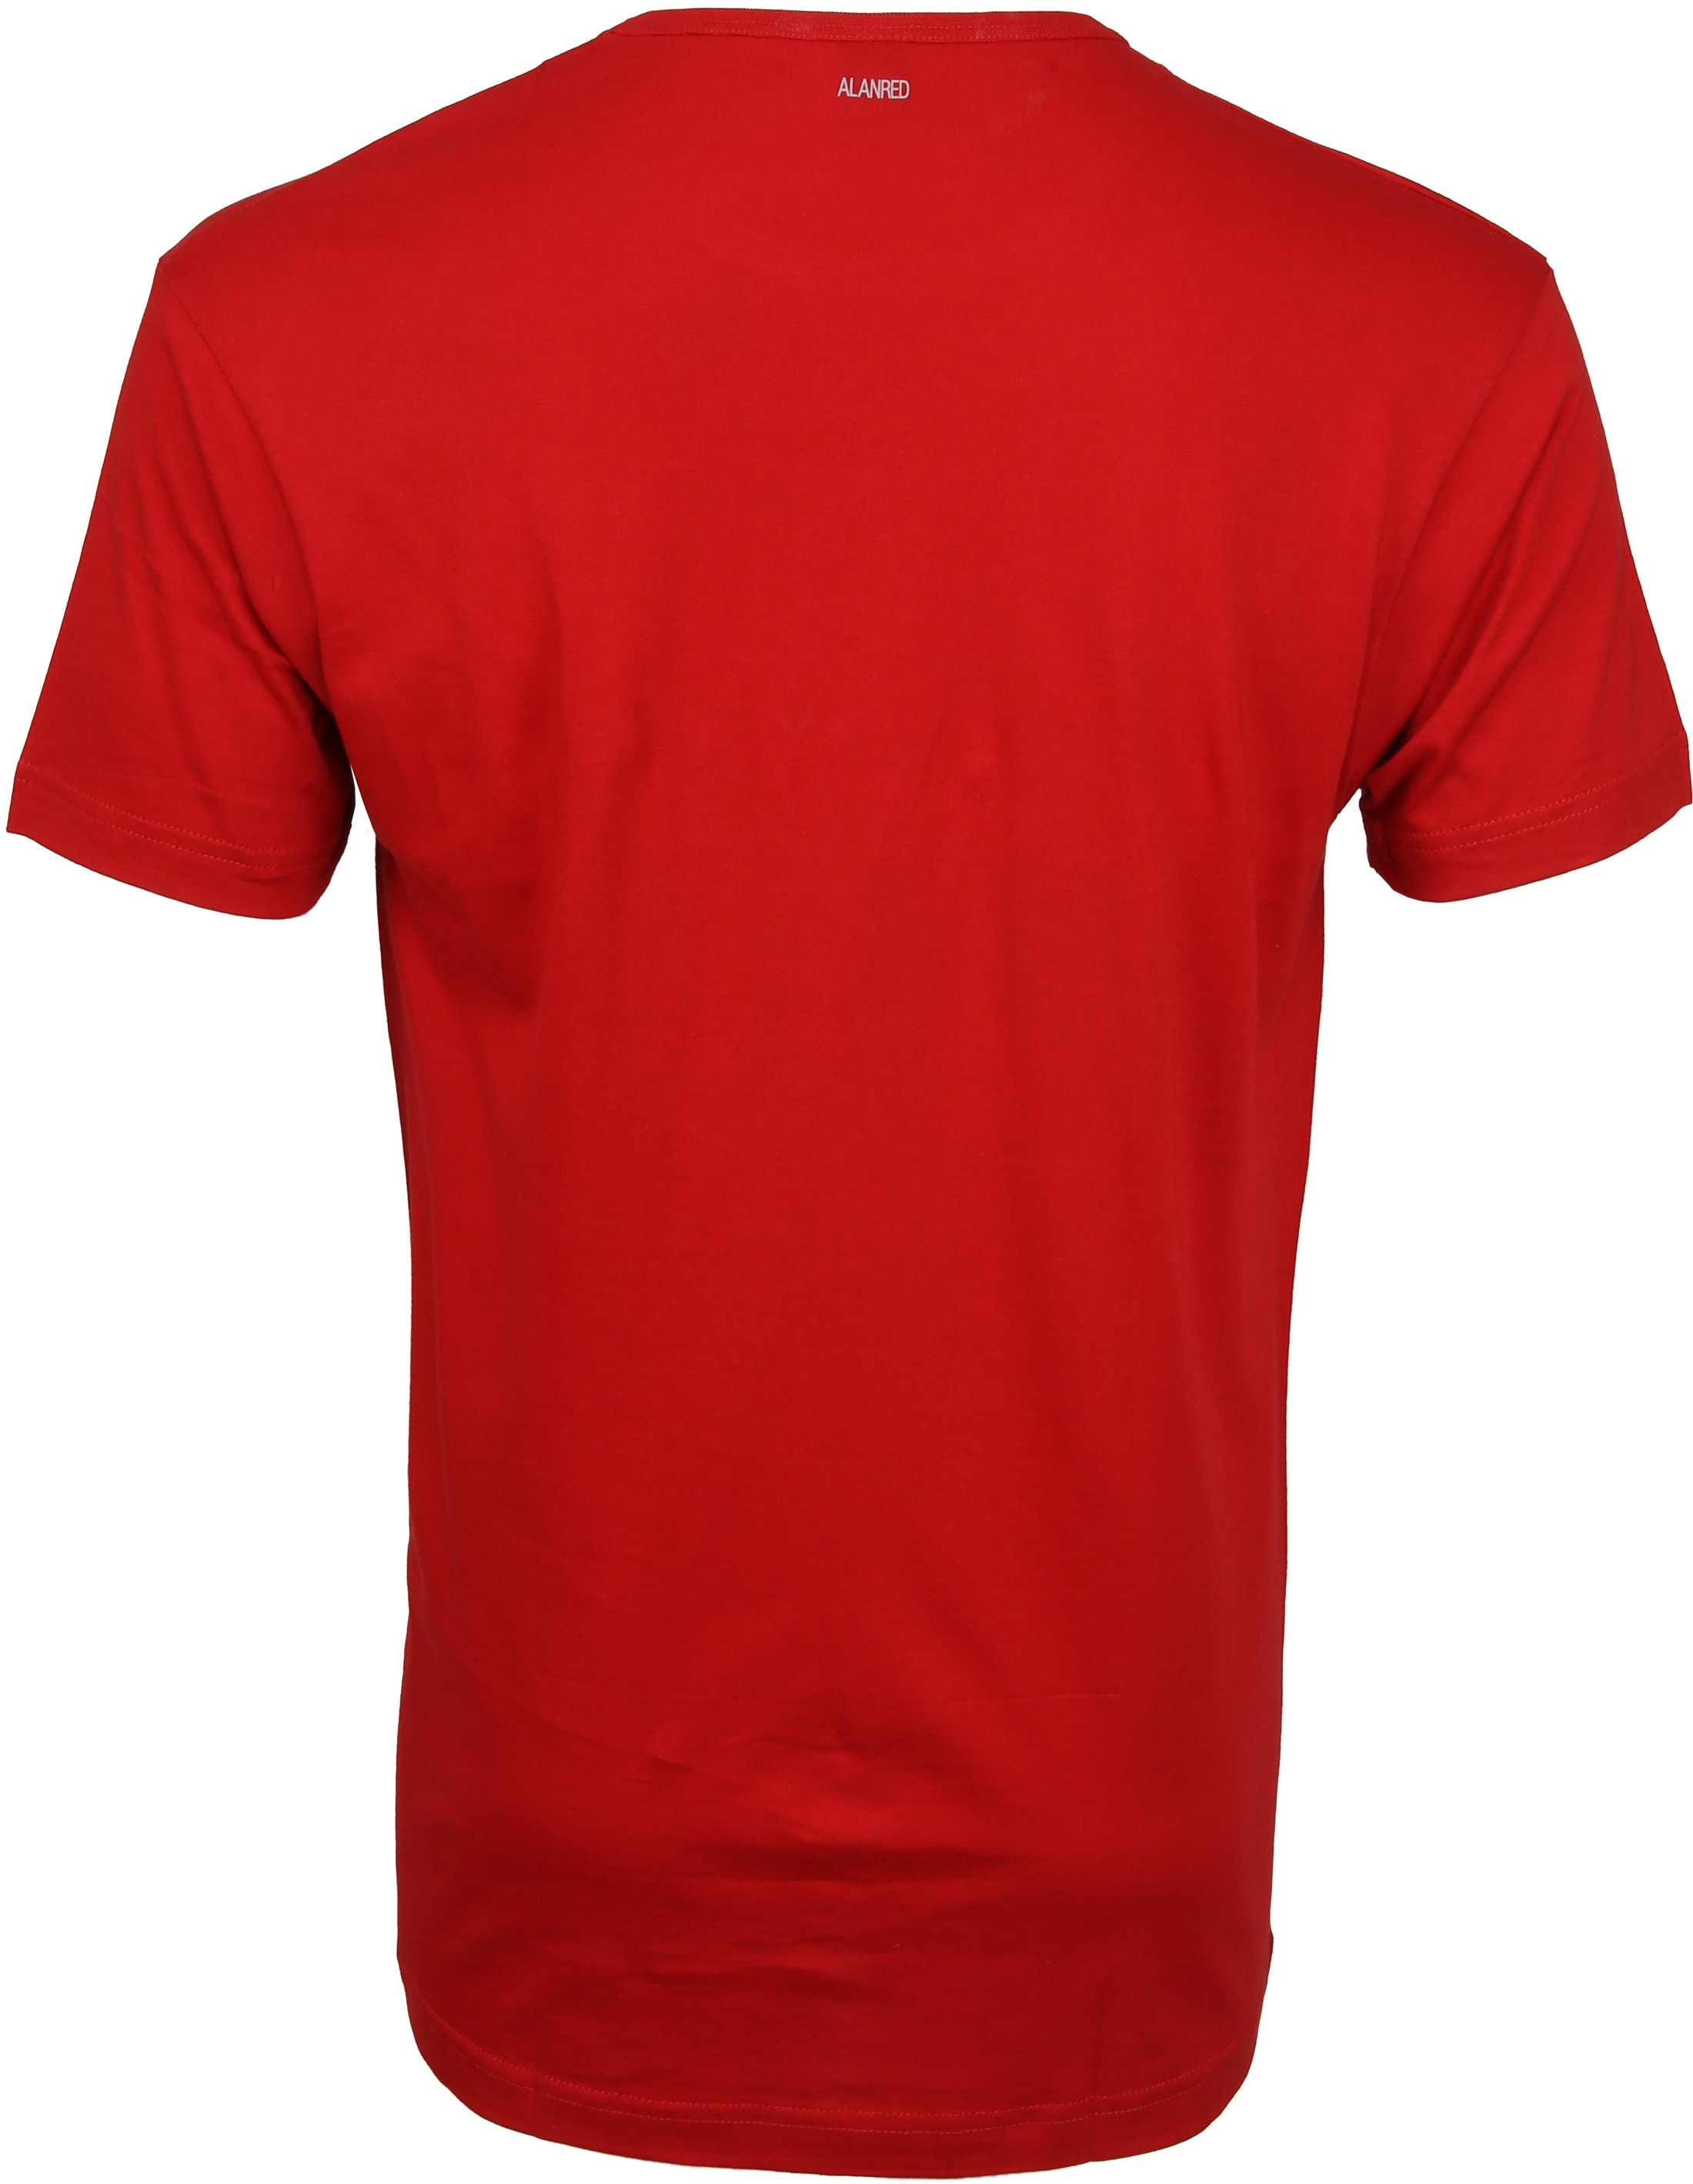 Alan Red Derby R-Neck T-Shirt Stone Red (2Pack) foto 3